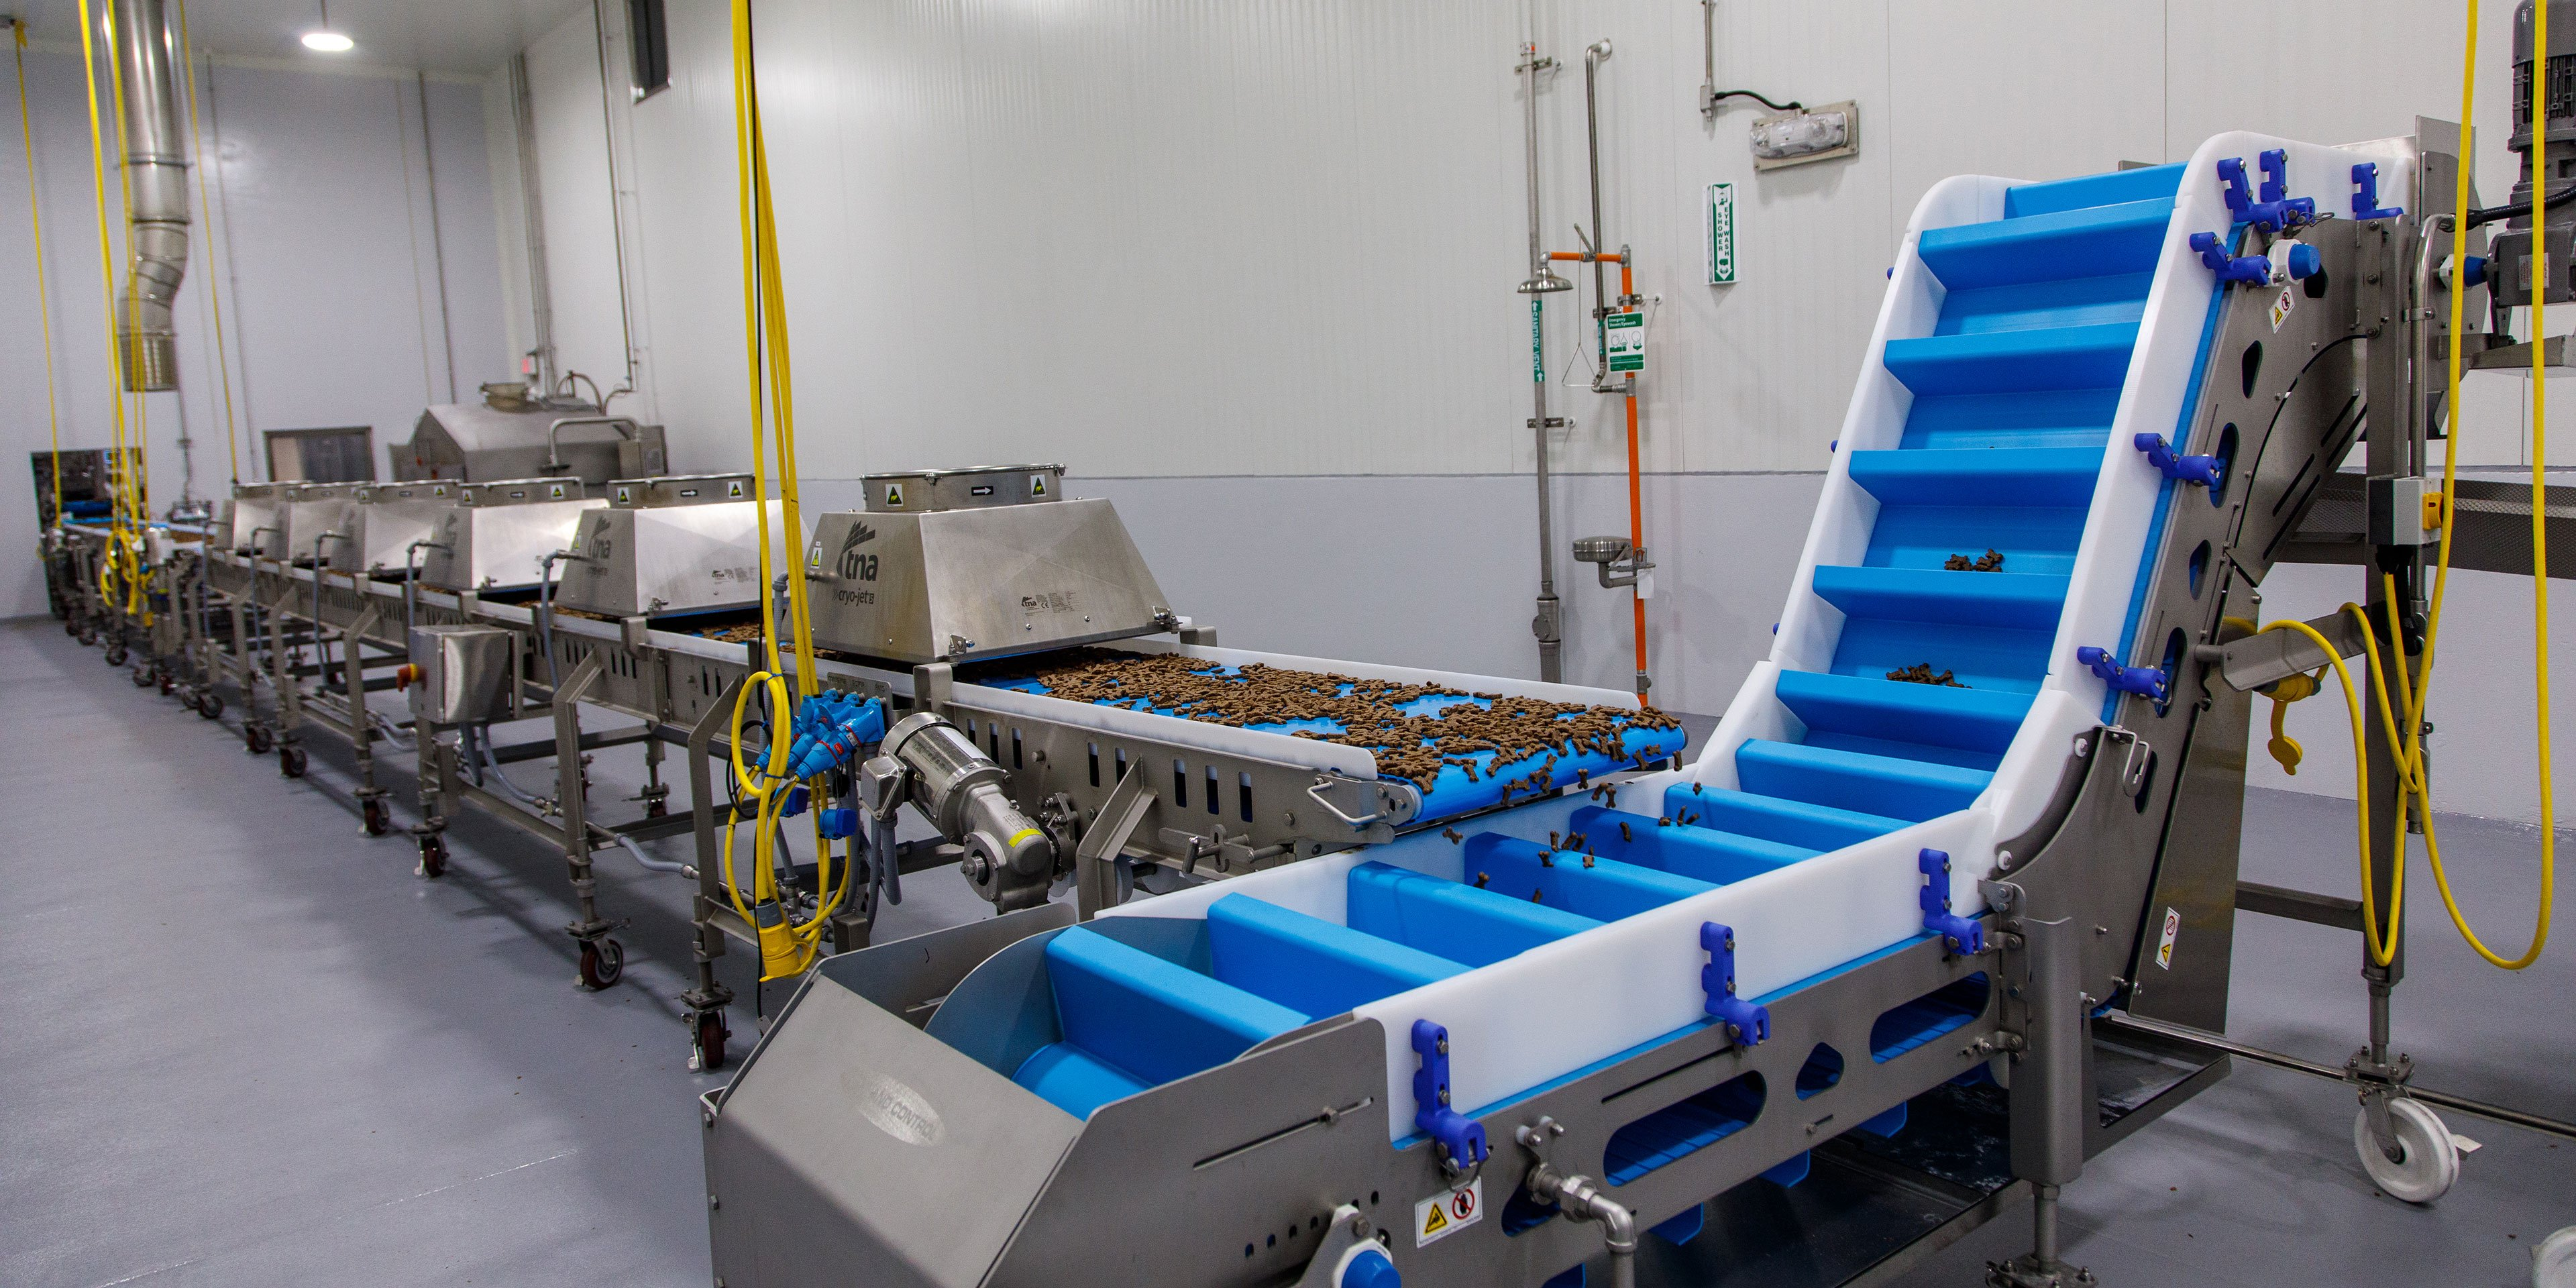 mobile conveyance equipment in pet treat manufacturing facility